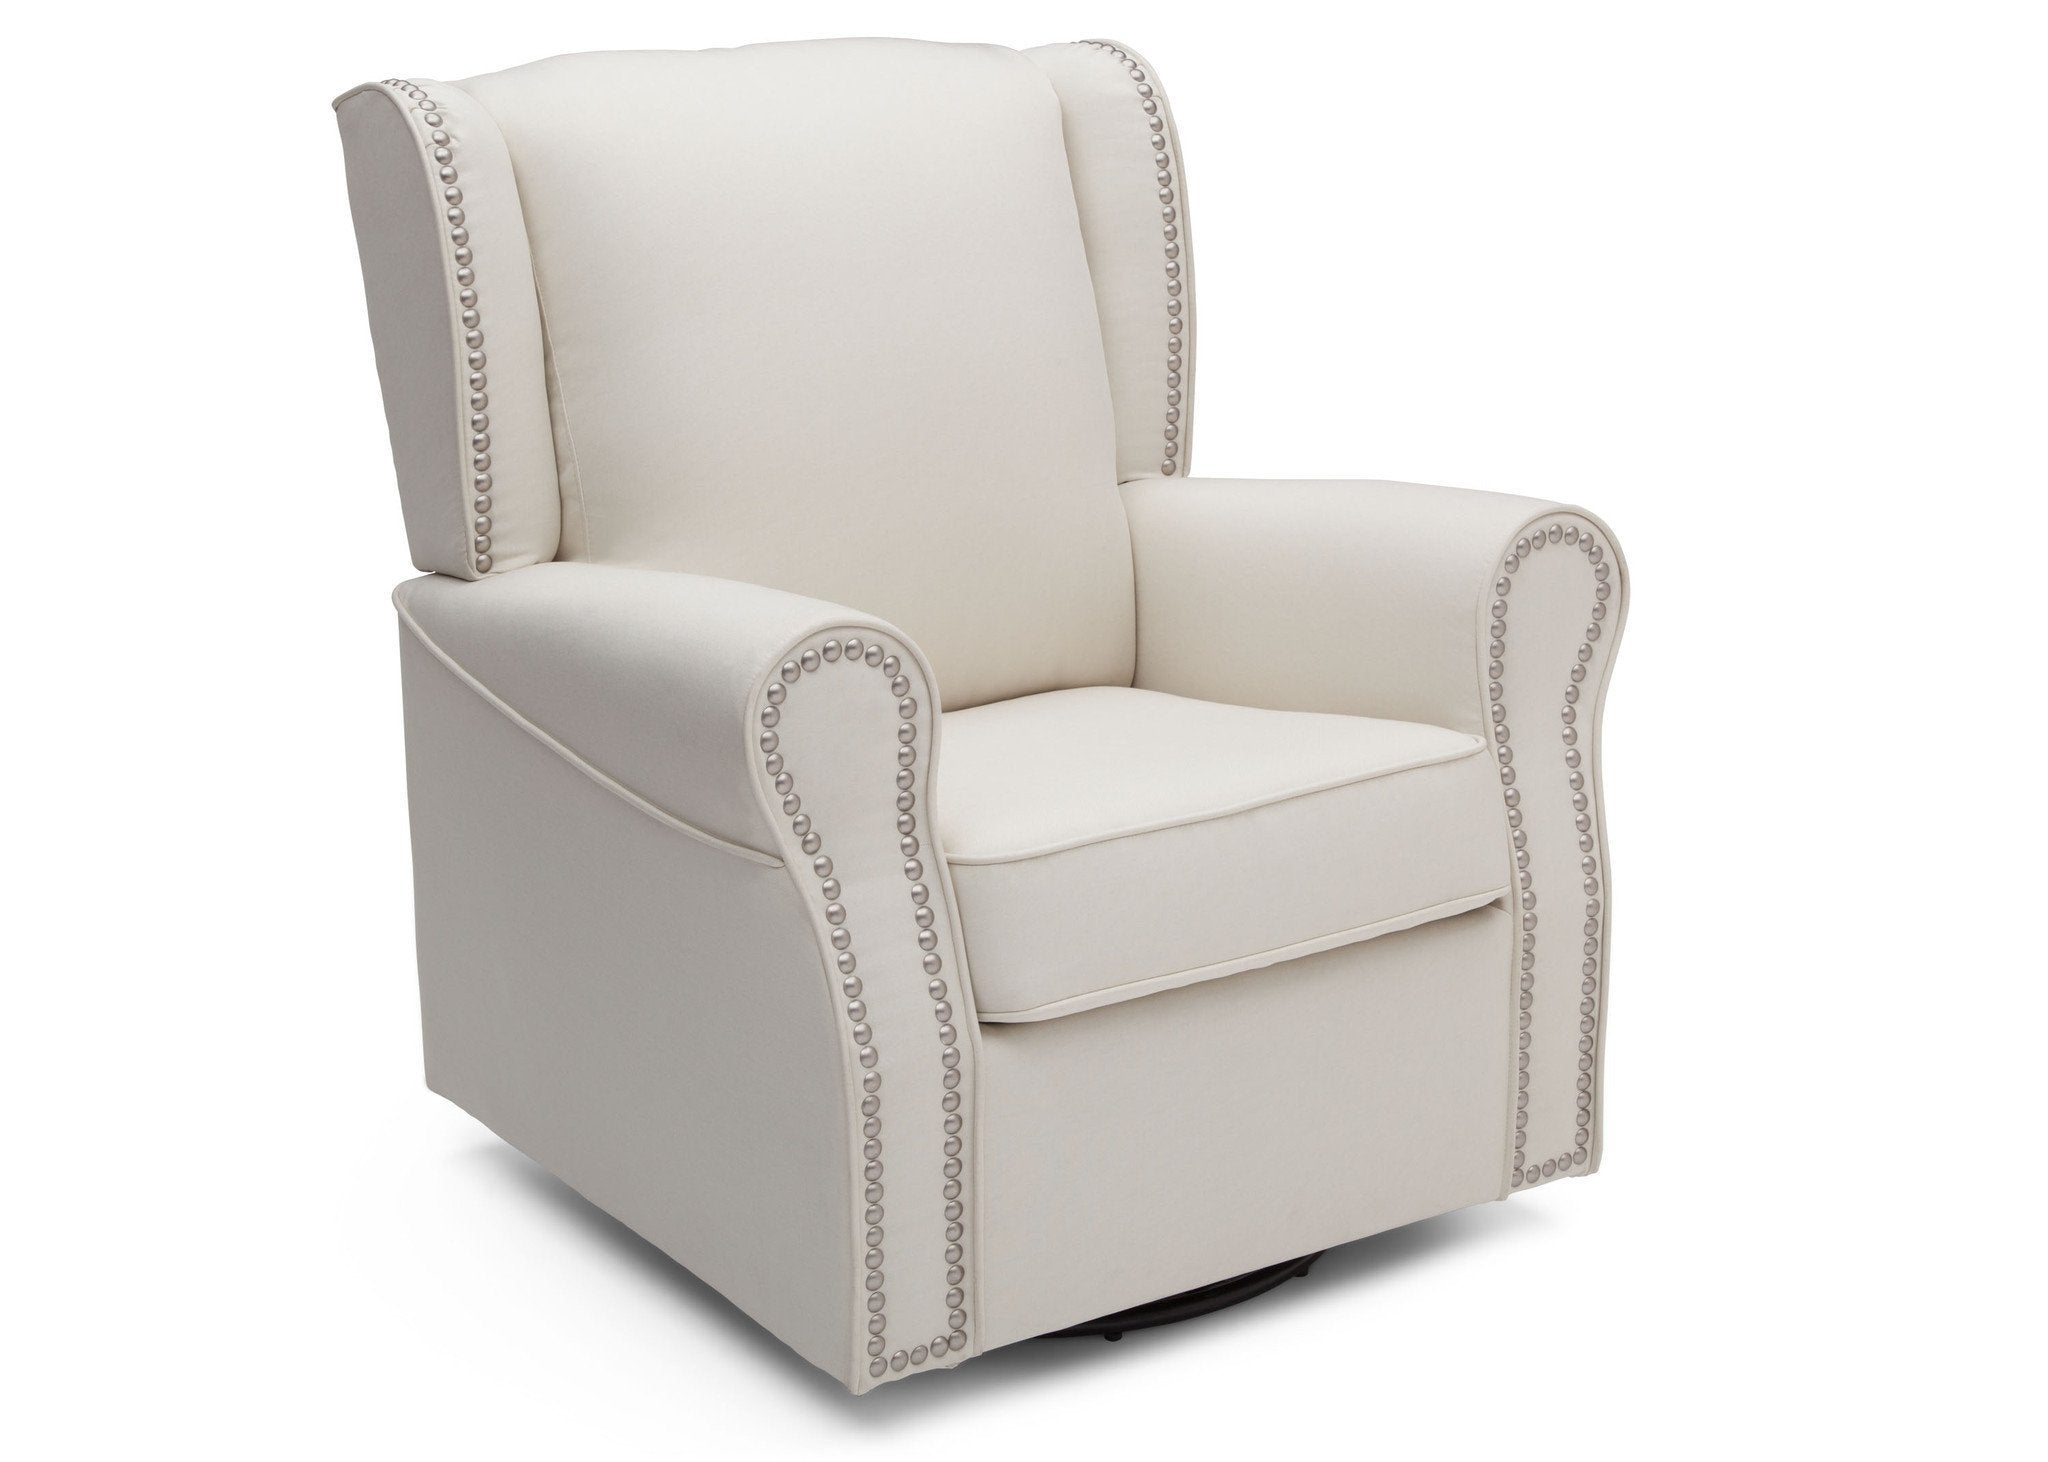 Delta Children Cream (743) Middleton Glider Right Facing View c3c